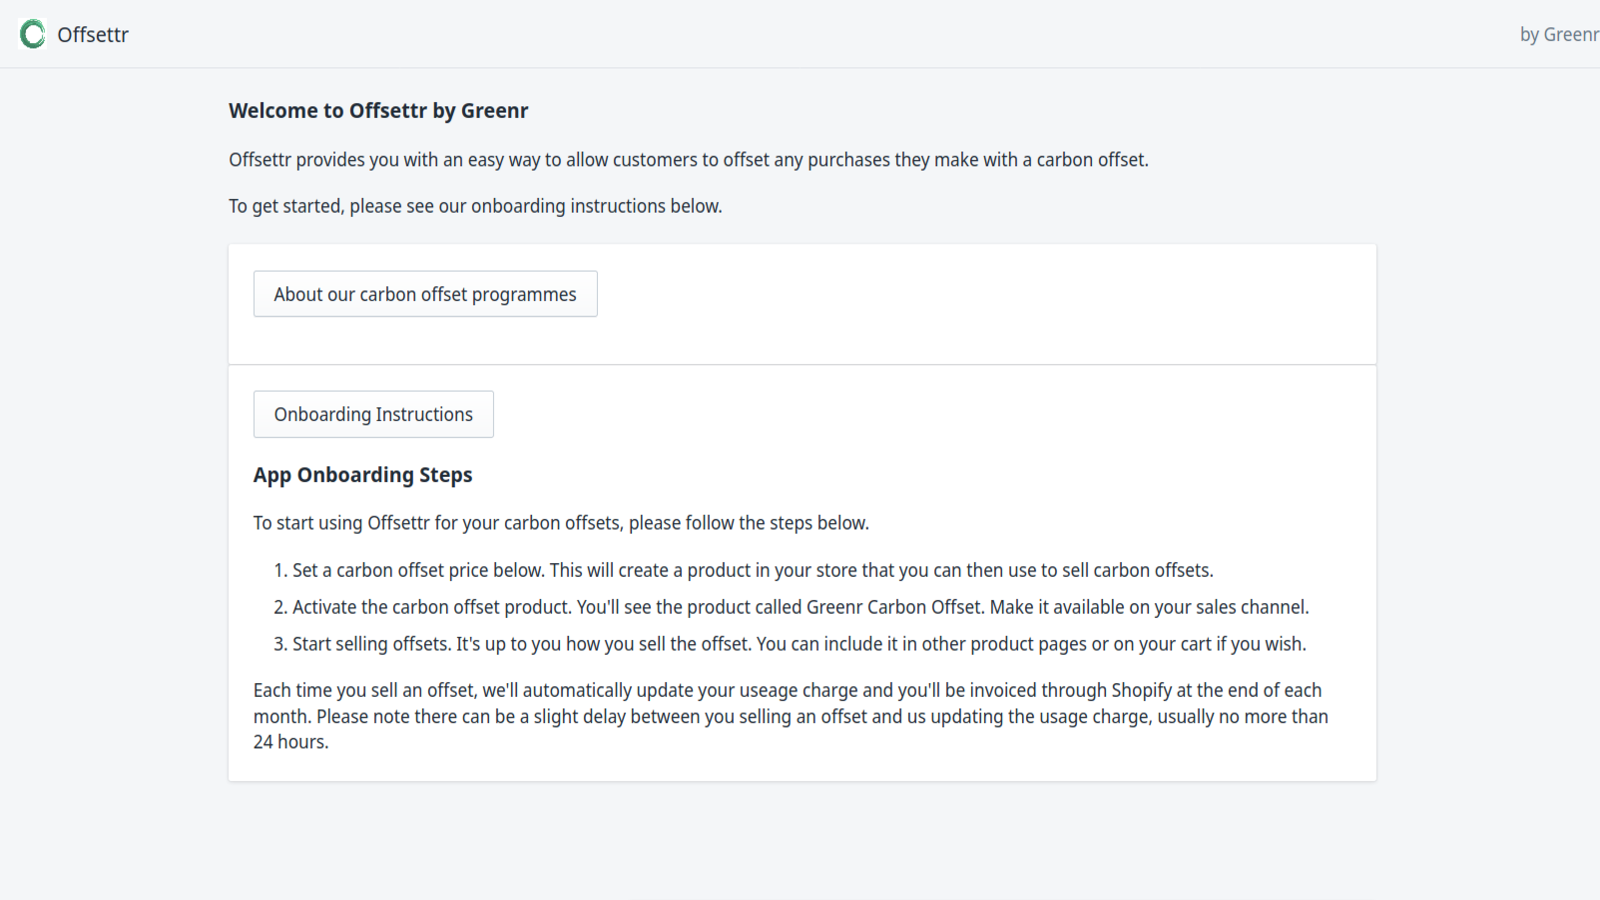 Onboarding and set up